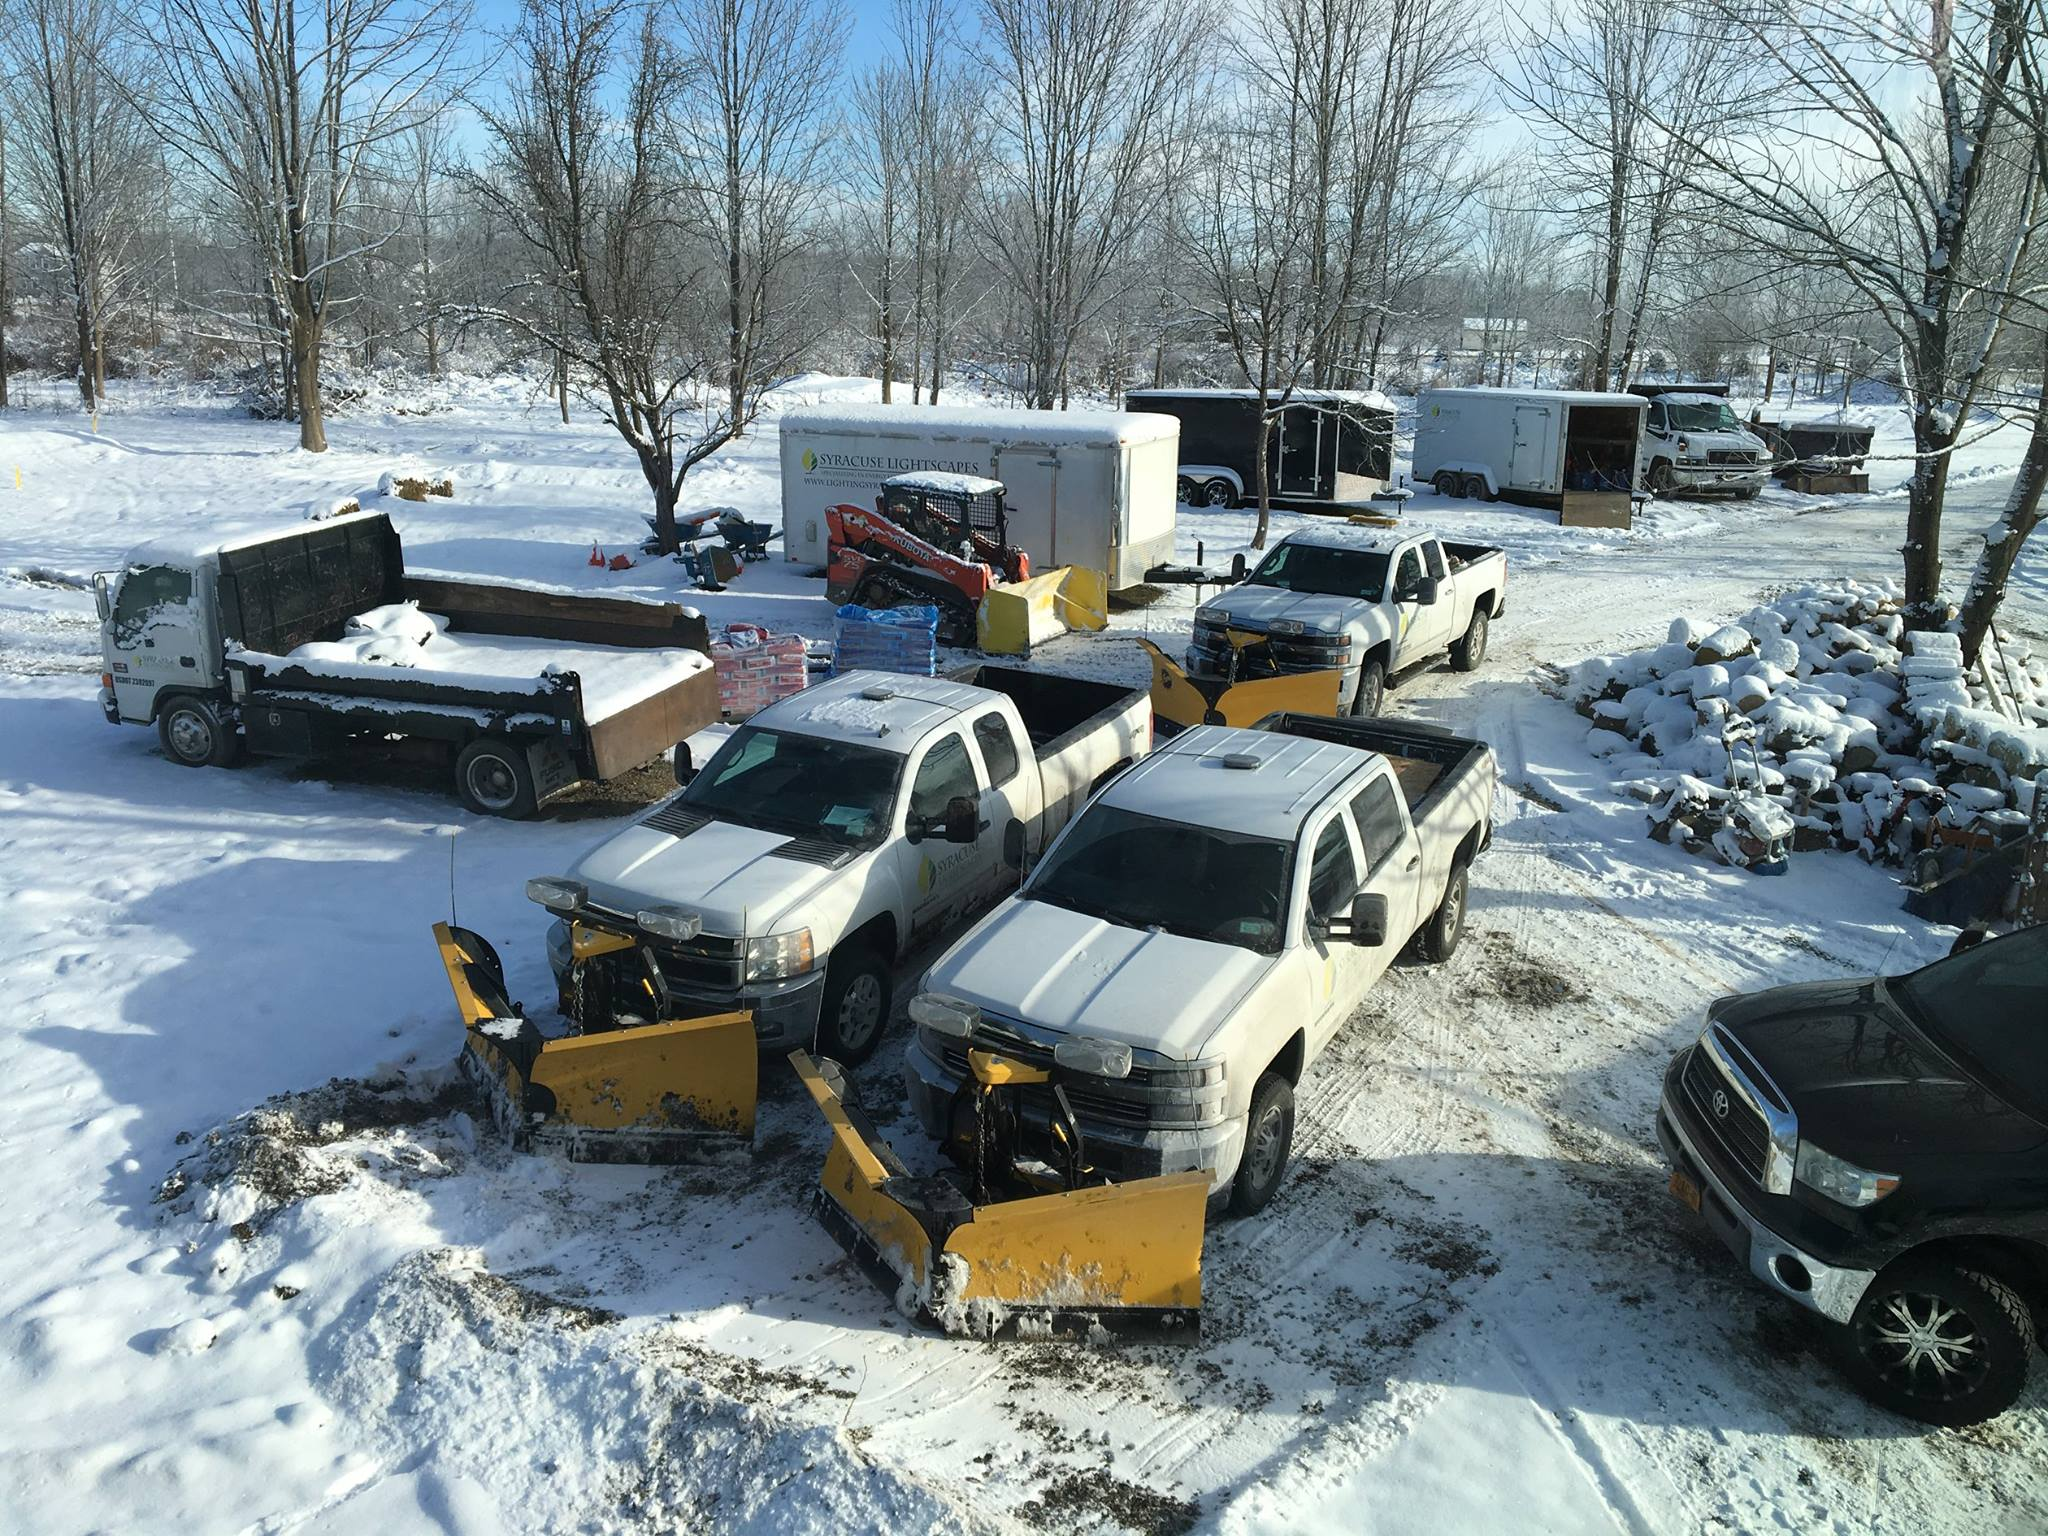 Back-up trucks  We have back-up trucks available in the event one of our trucks goes down. It will not compromise our service standards.